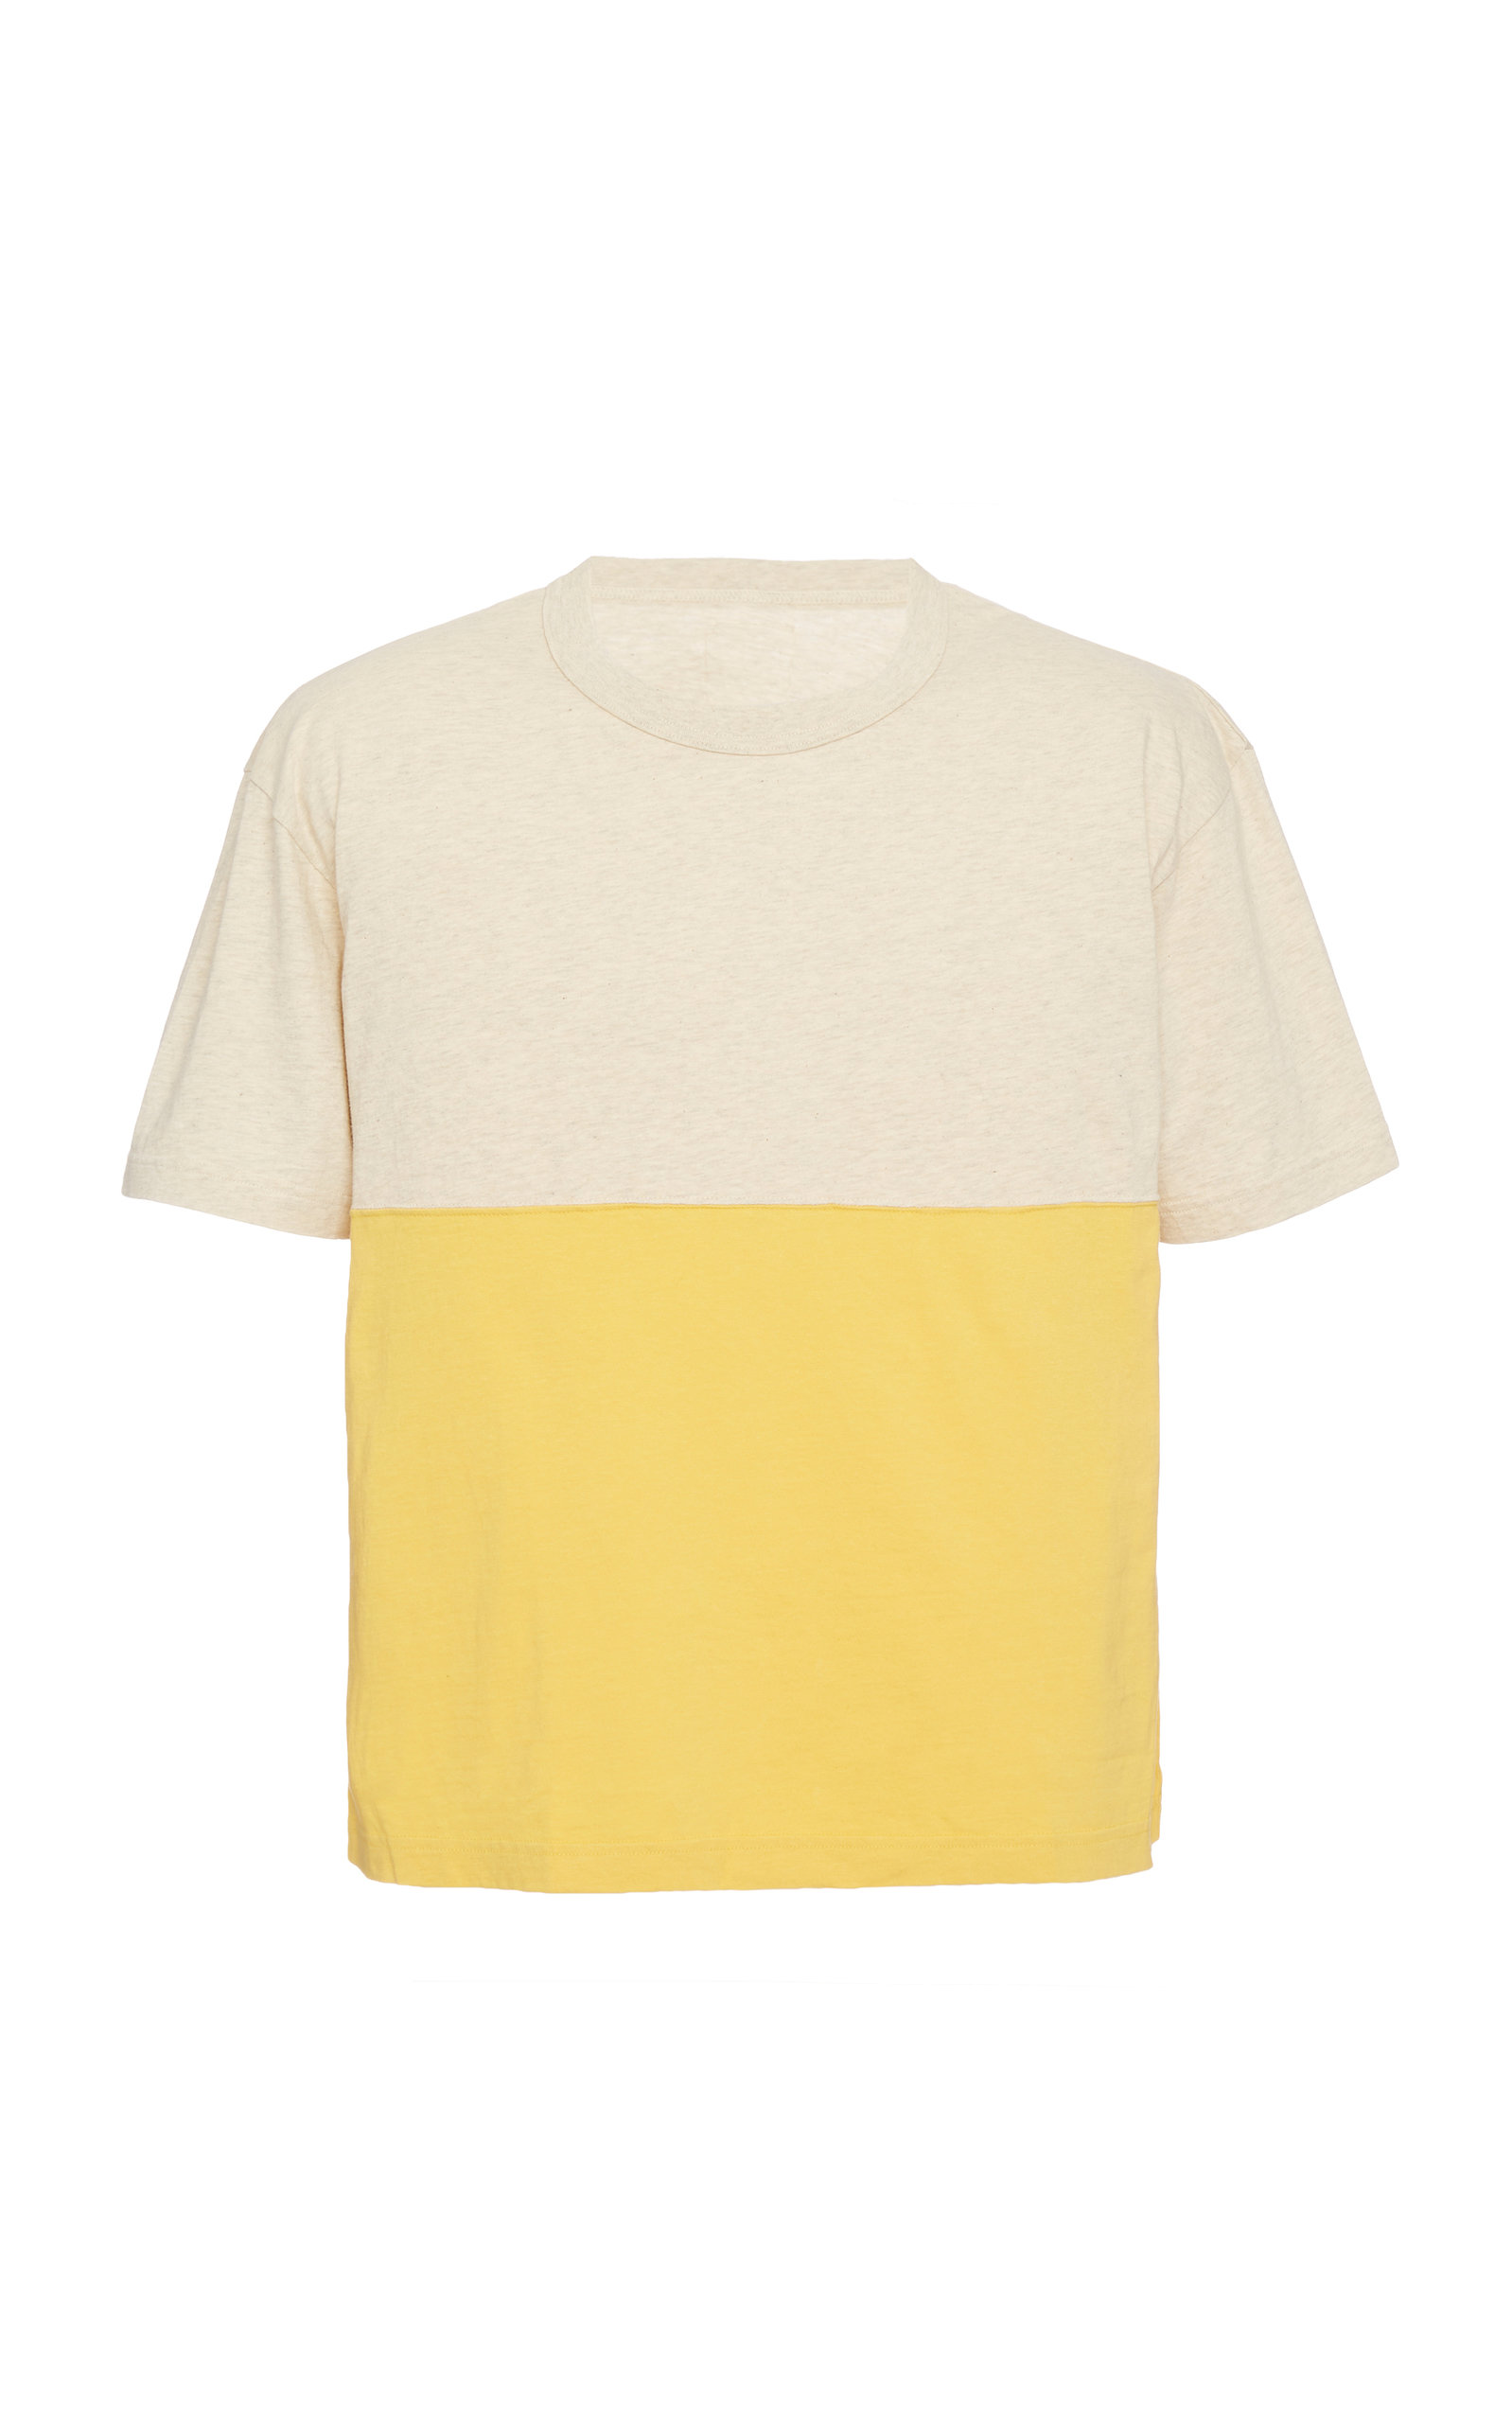 Visvim T-shirts Oversized Two-Tone Cotton T-Shirt